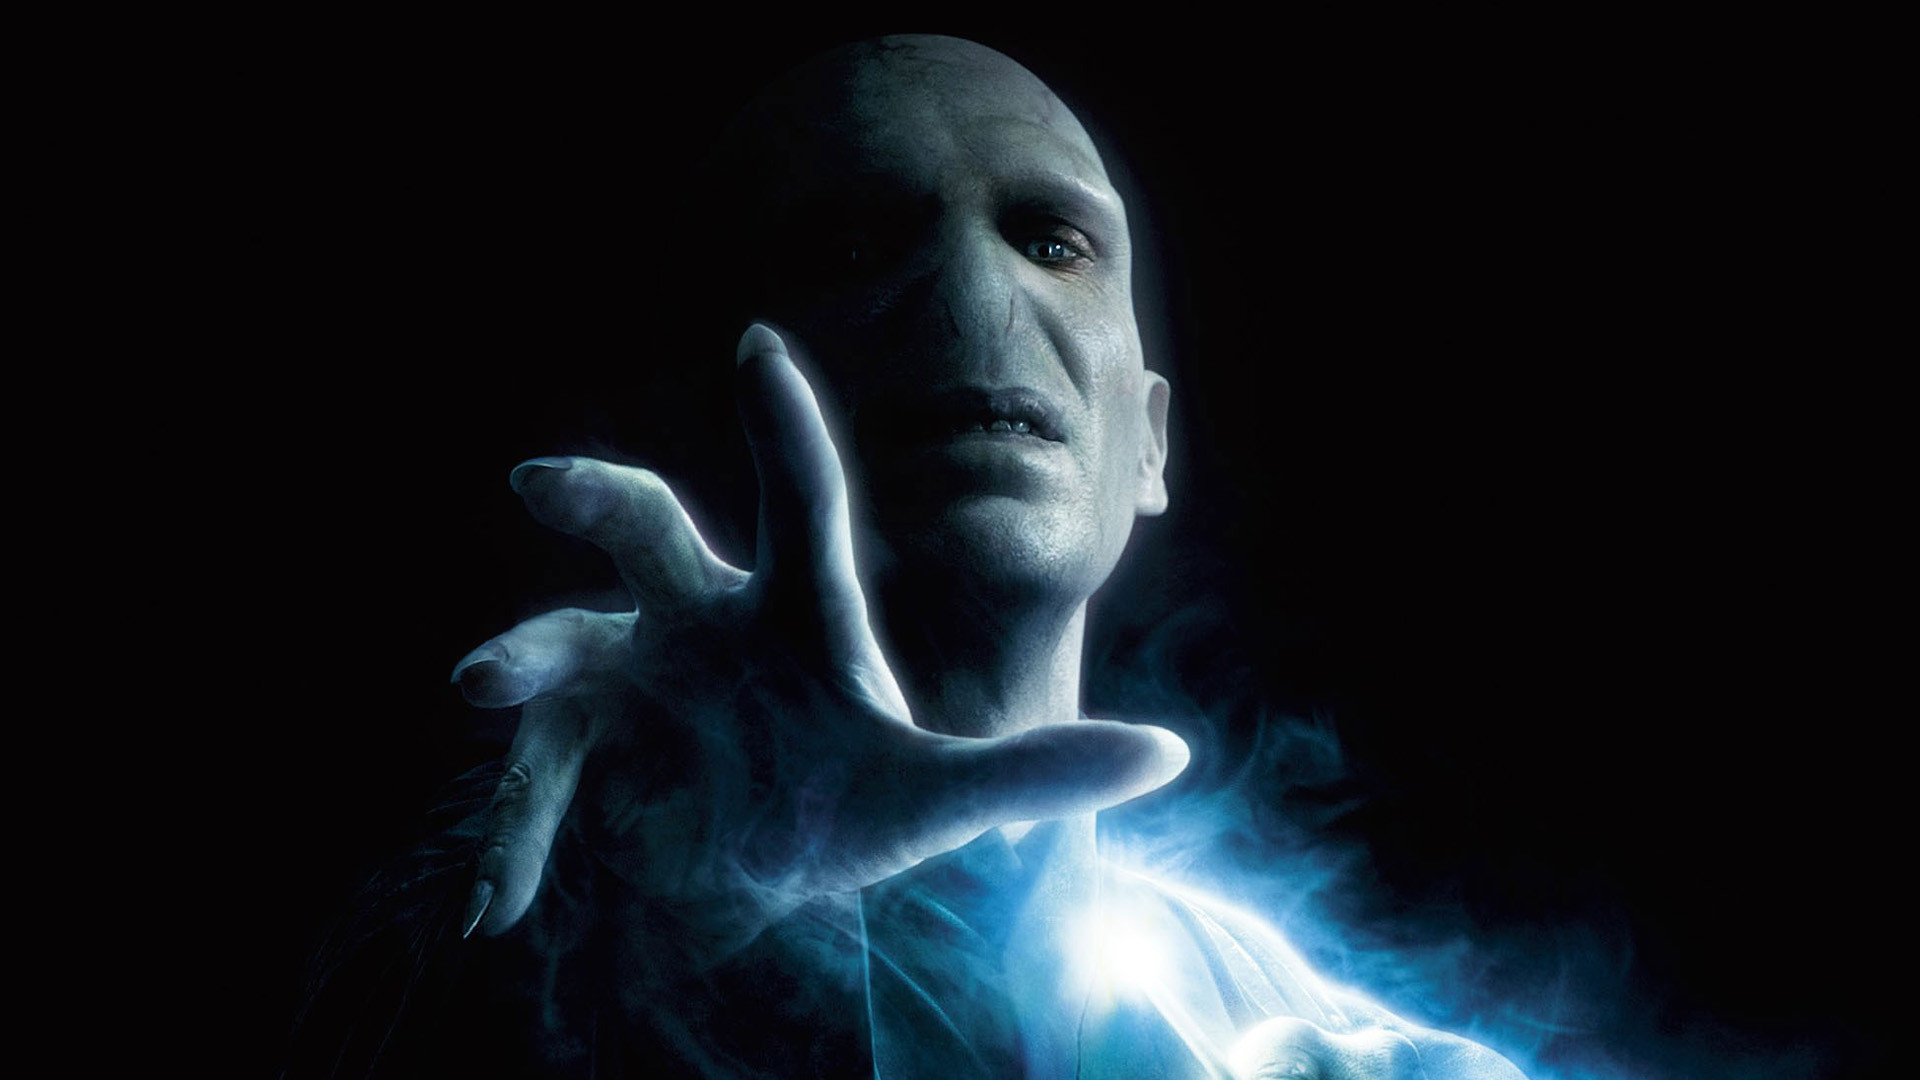 Lord Voldemort 579.52 Kb